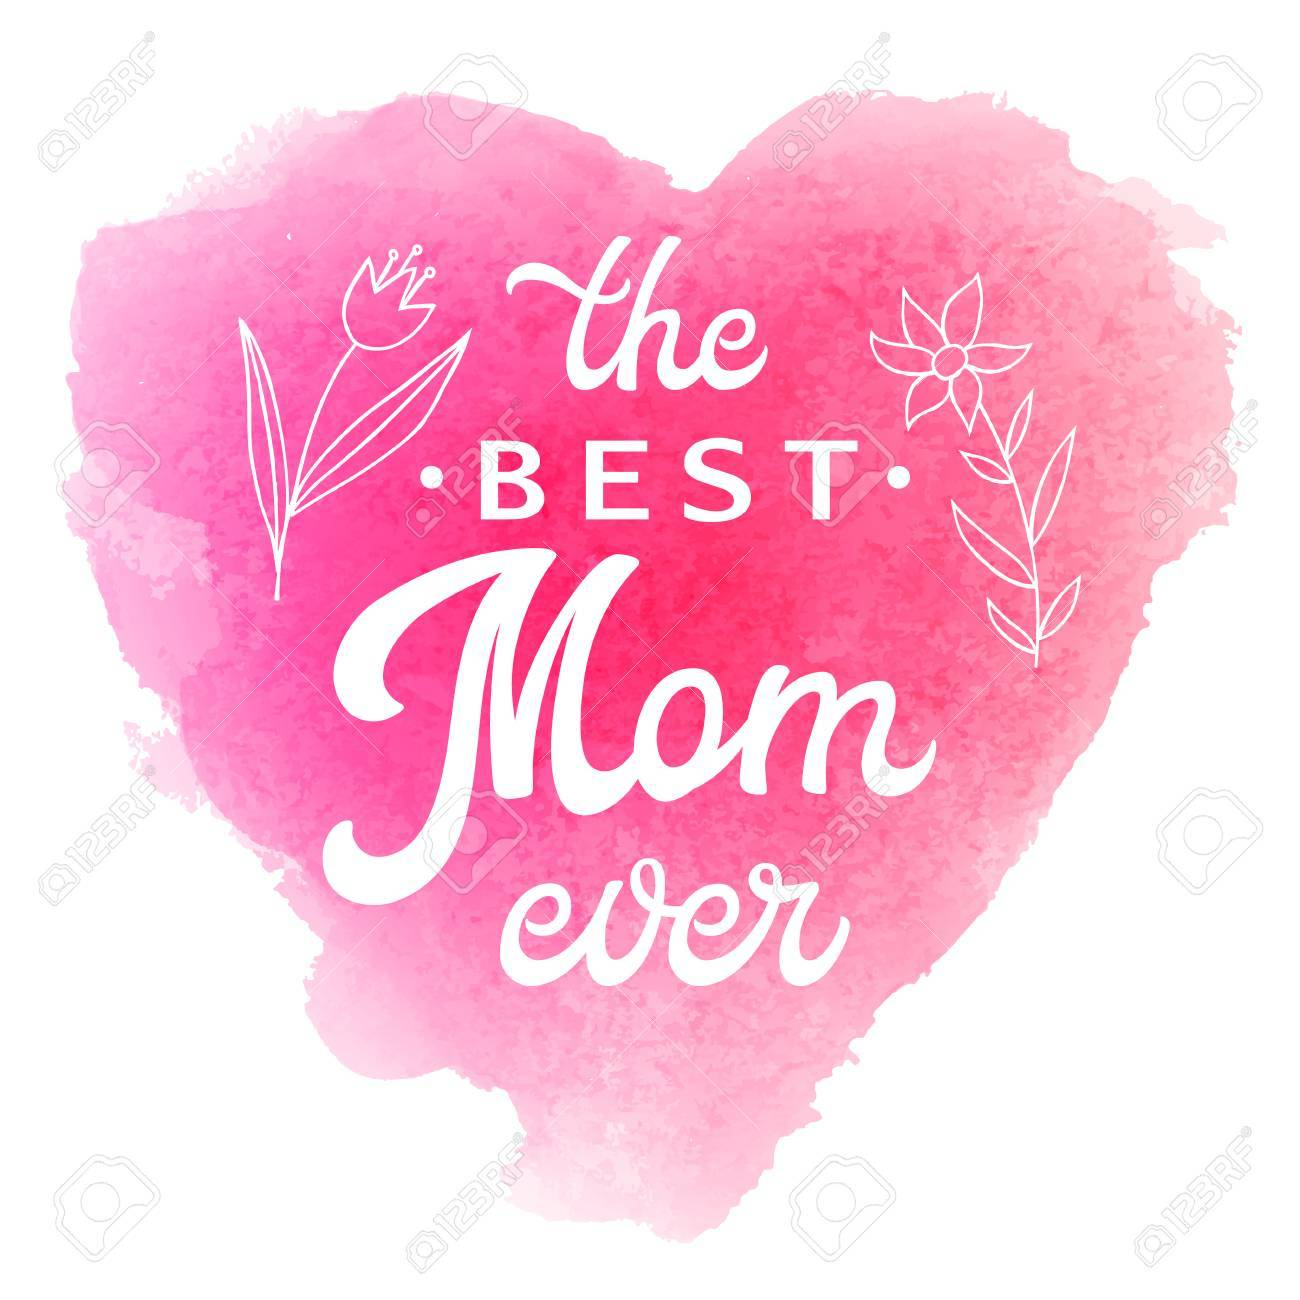 48e0f80812 Best Mom Ever. Greeting Card with flowers and hand lettering text on  abstract pink watercolor